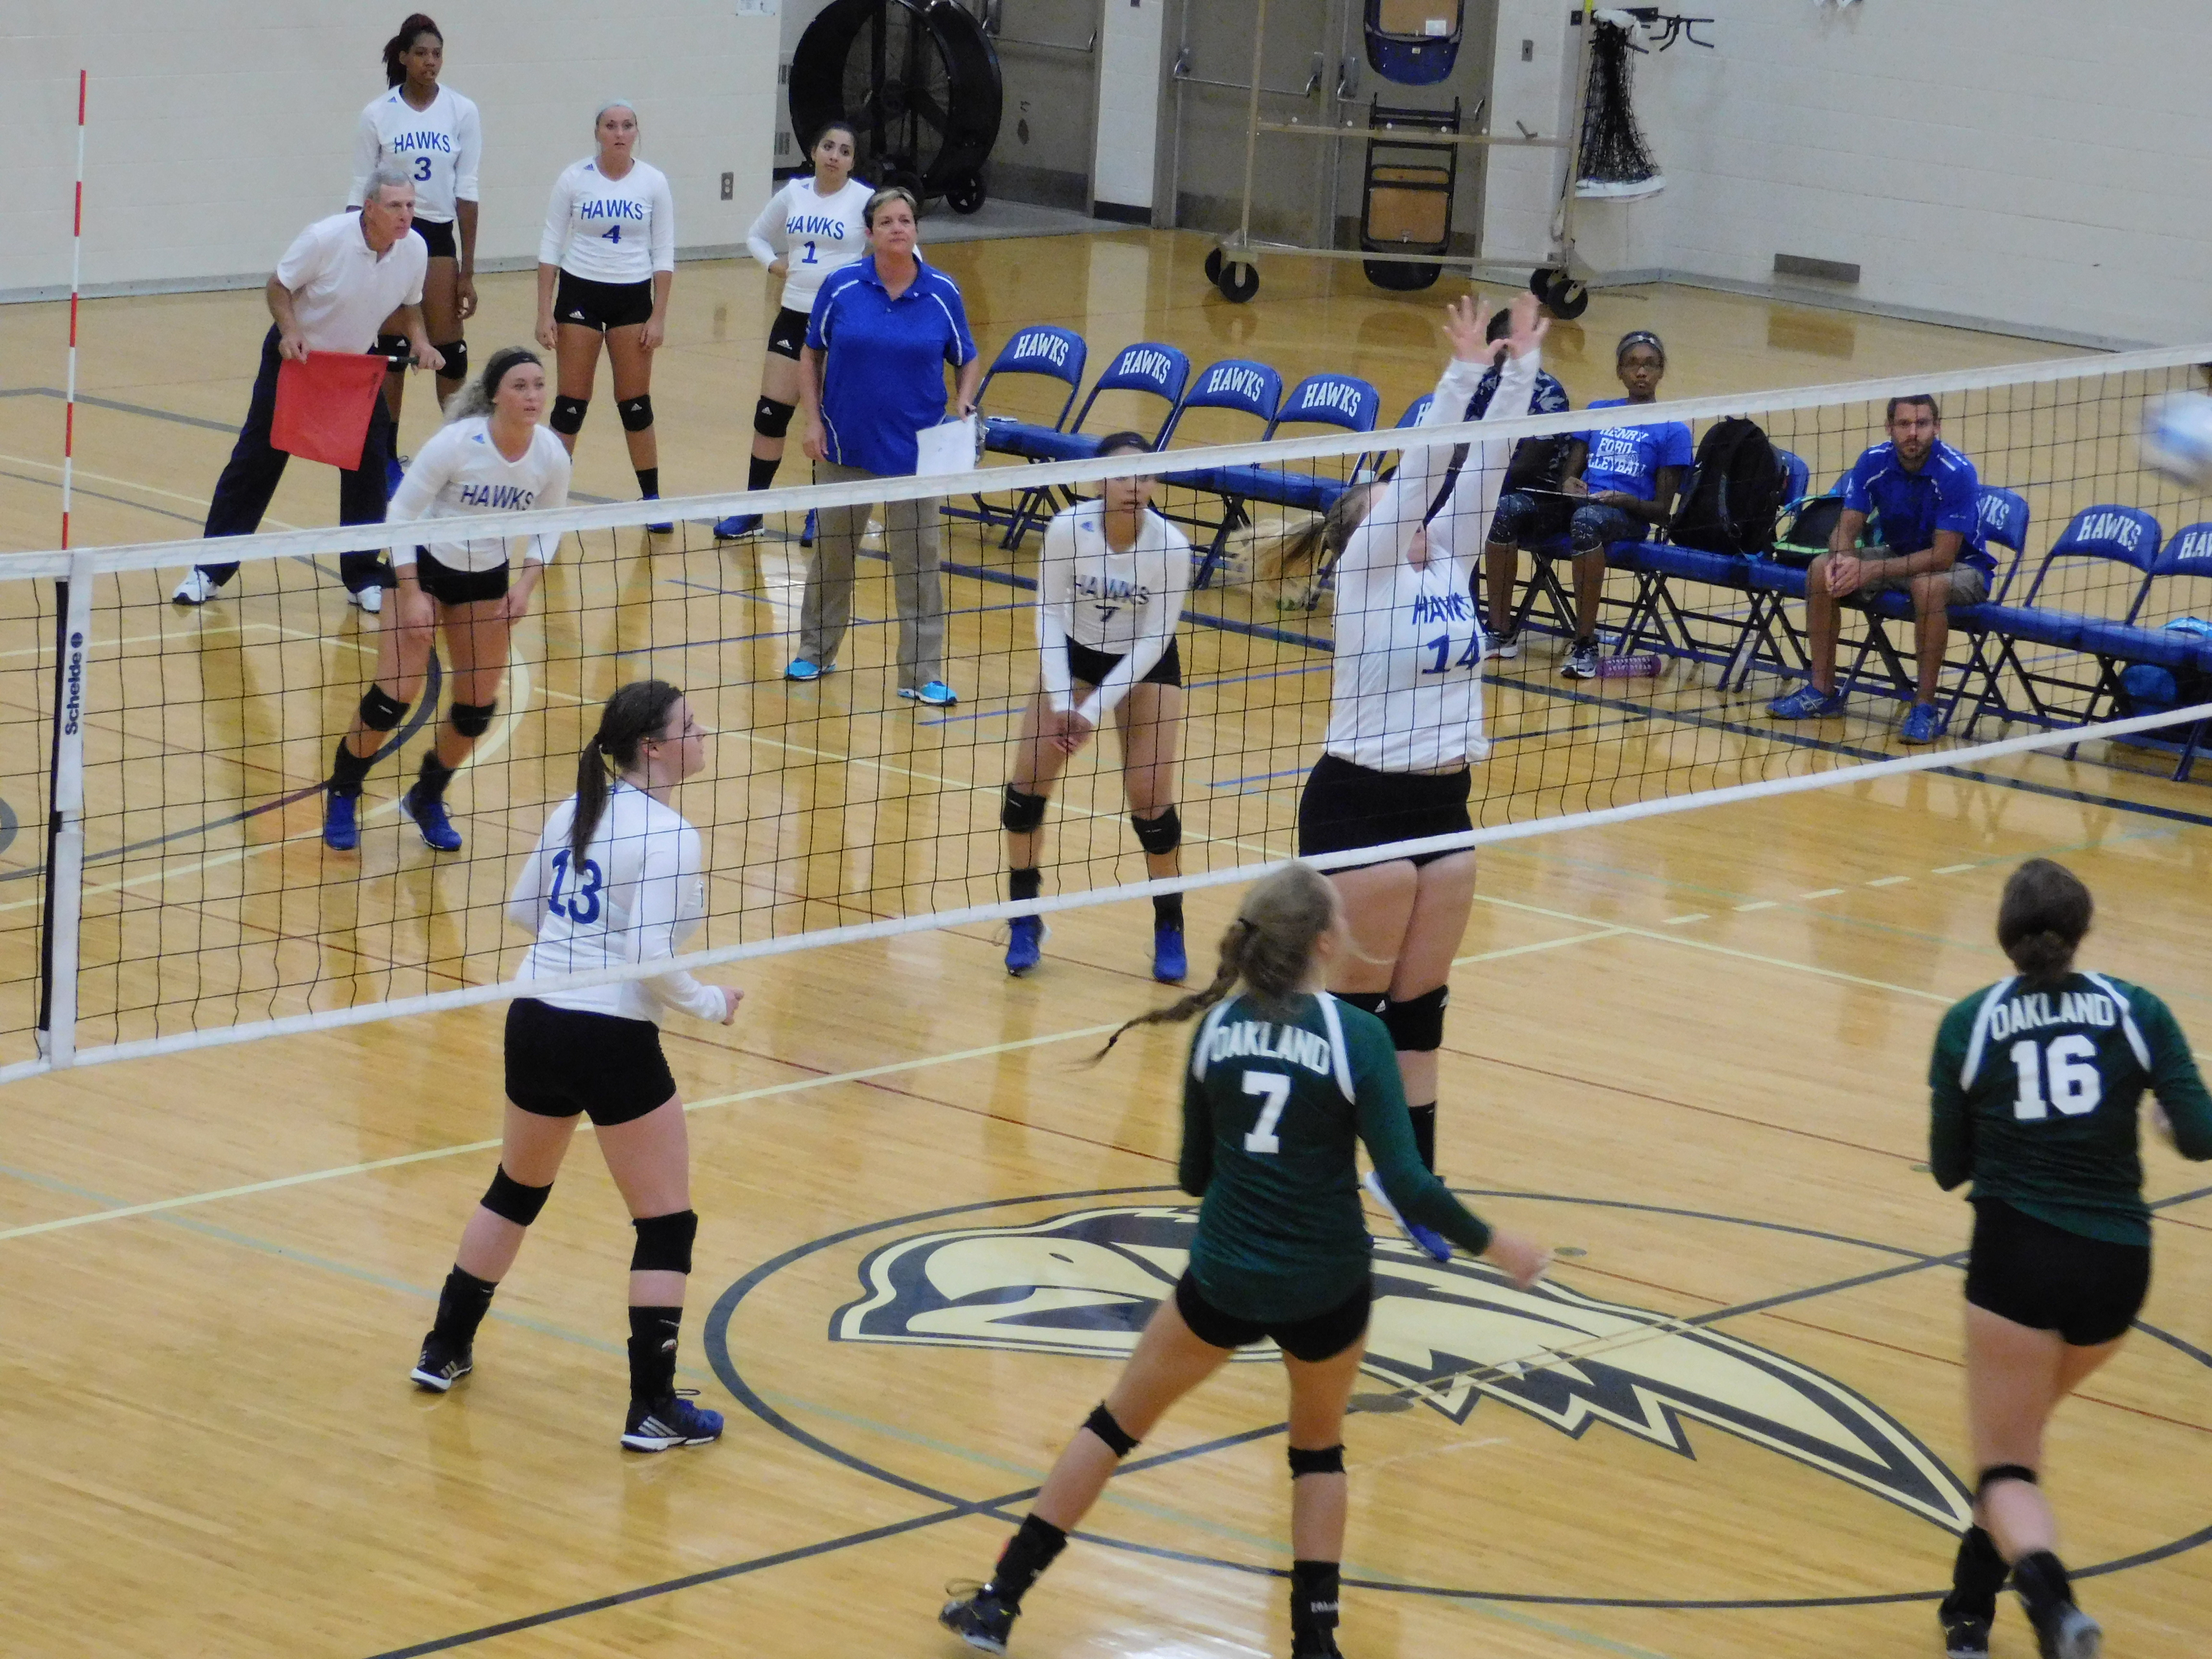 Hawks girls volleyball team blocking a shot from the opposing team.